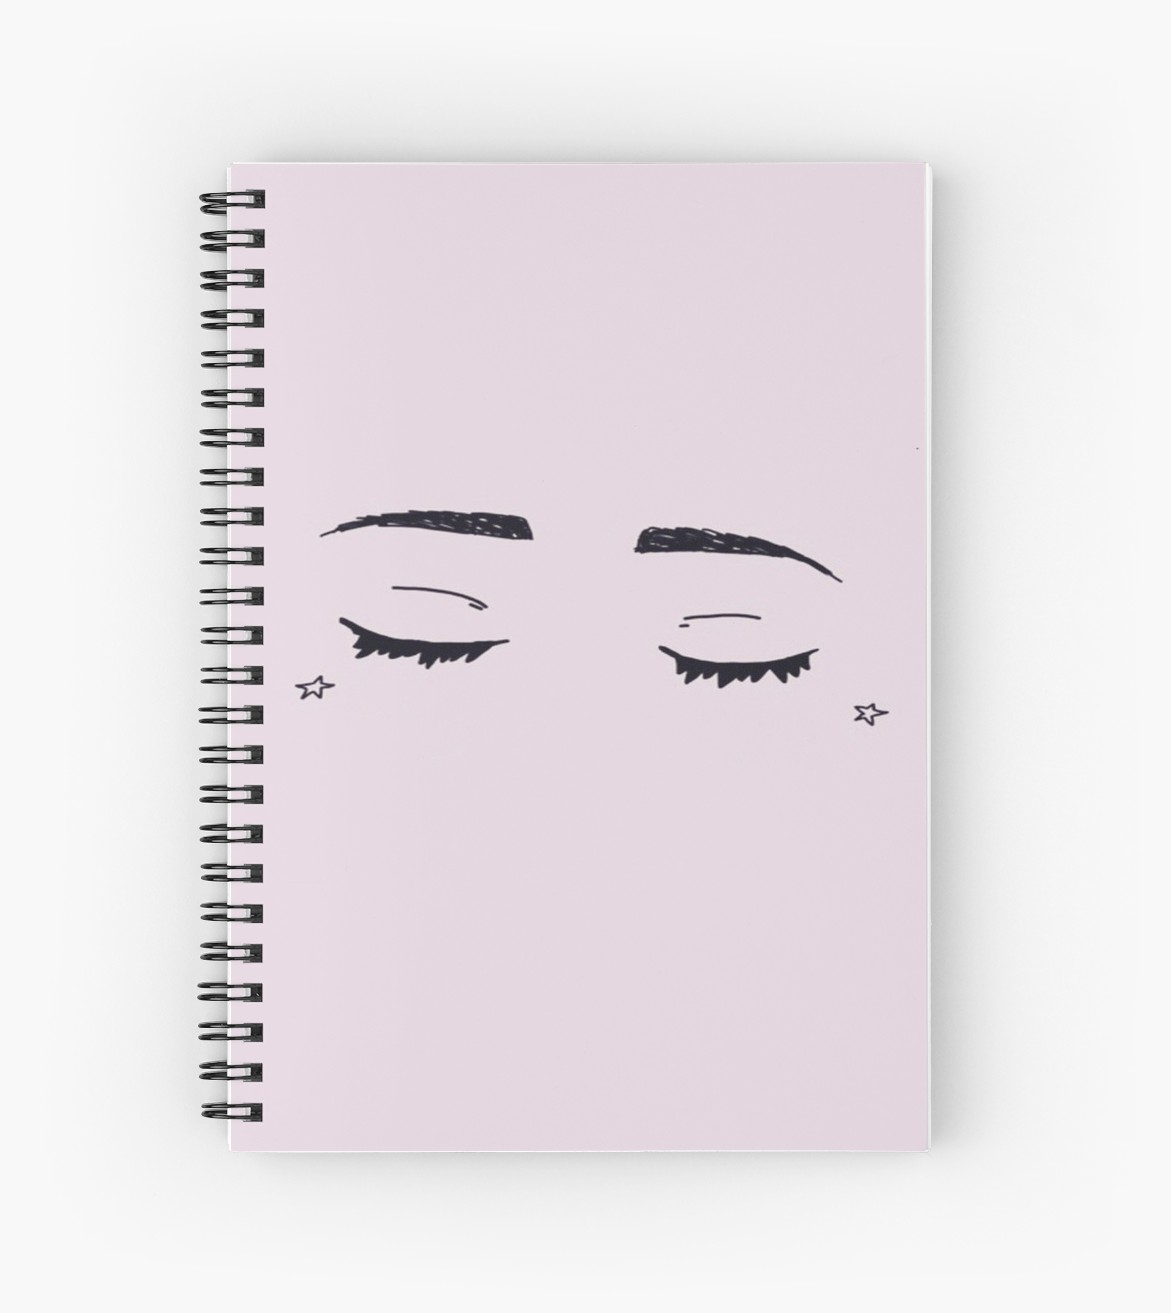 image royalty free library Drawing notebooks.  aesthetic spiral notebook